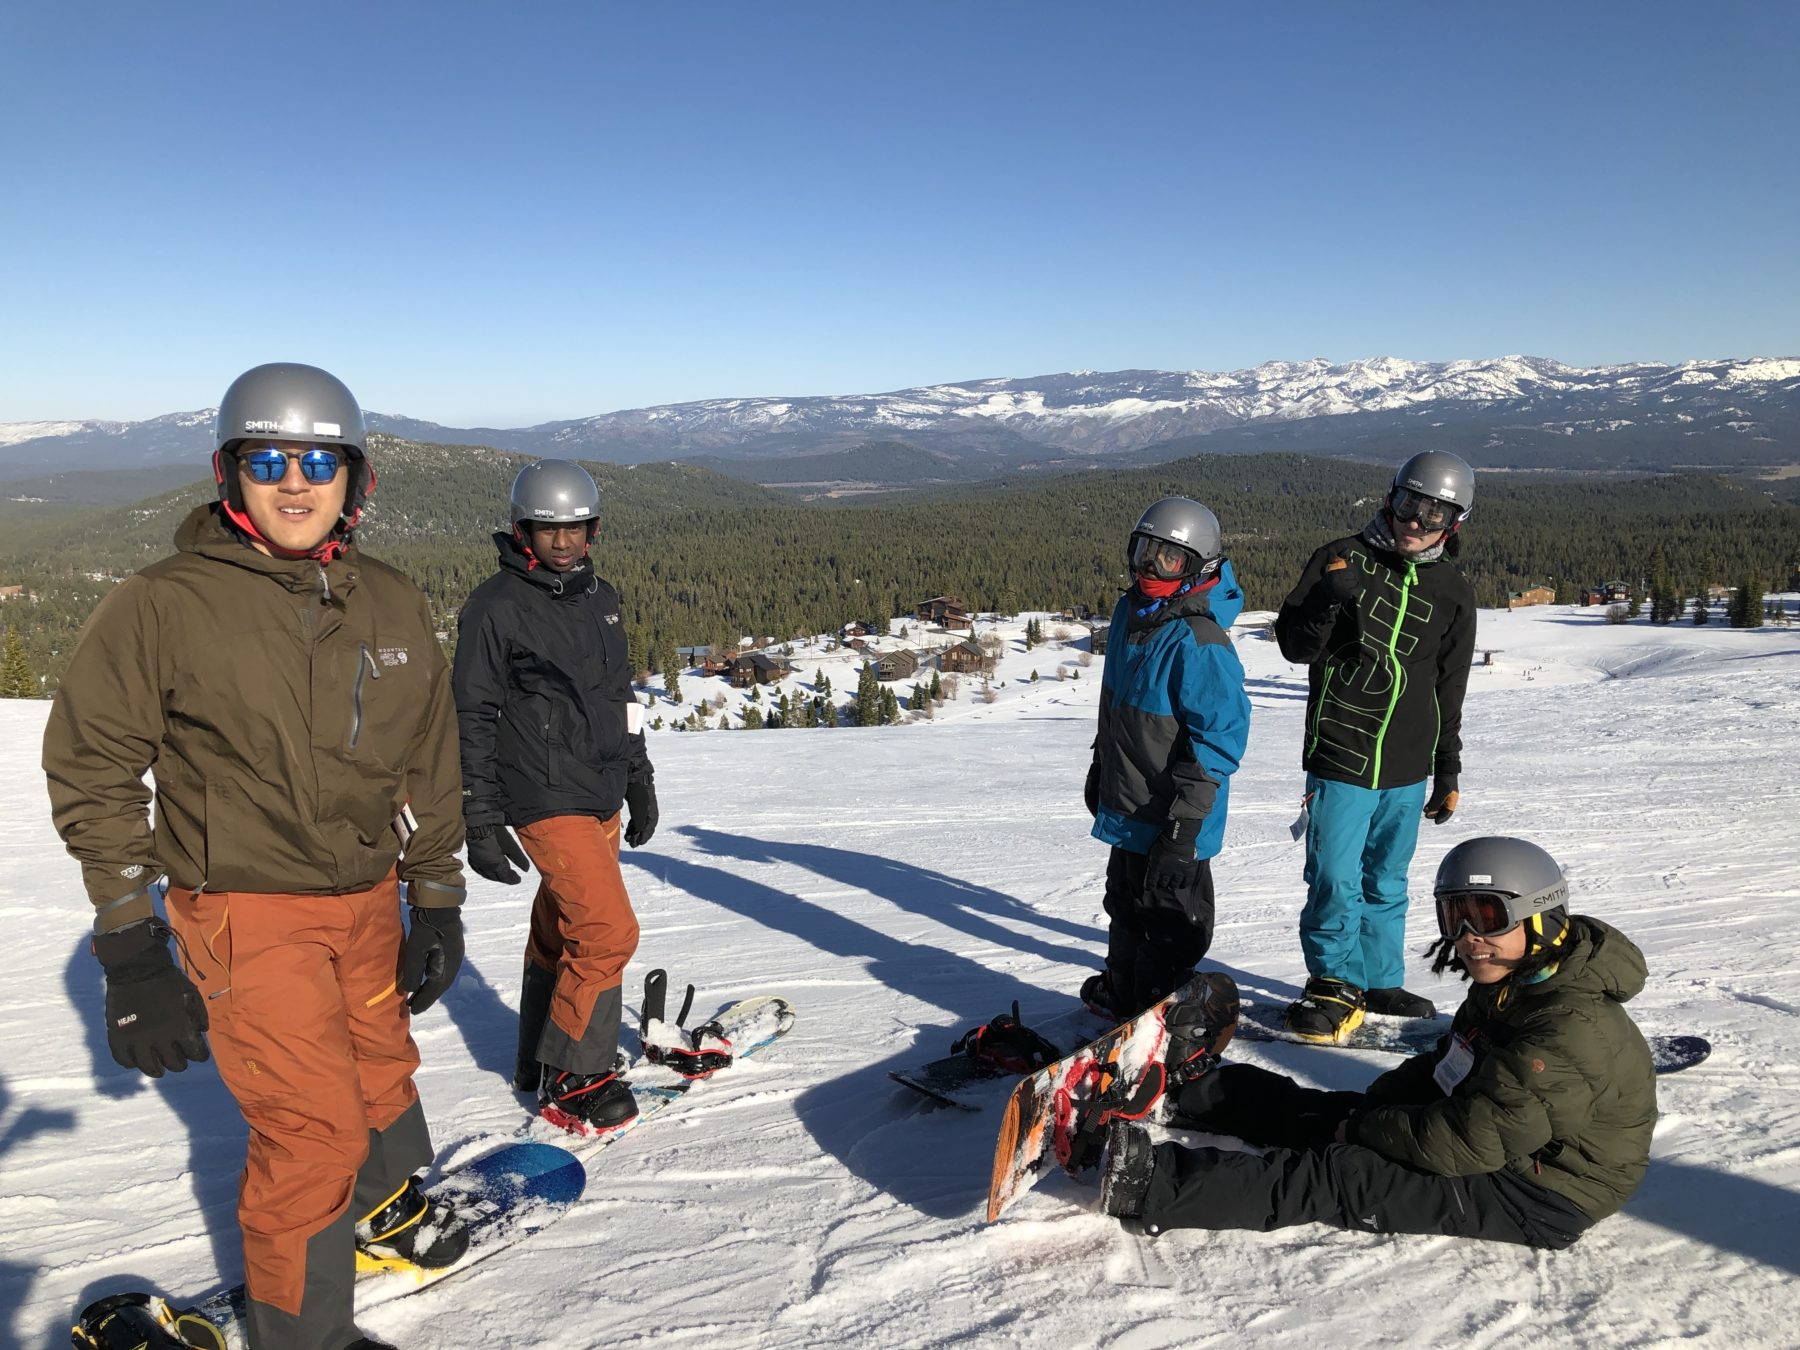 Youth on snowboards at top of mountain with snowcapped mountains in the background.